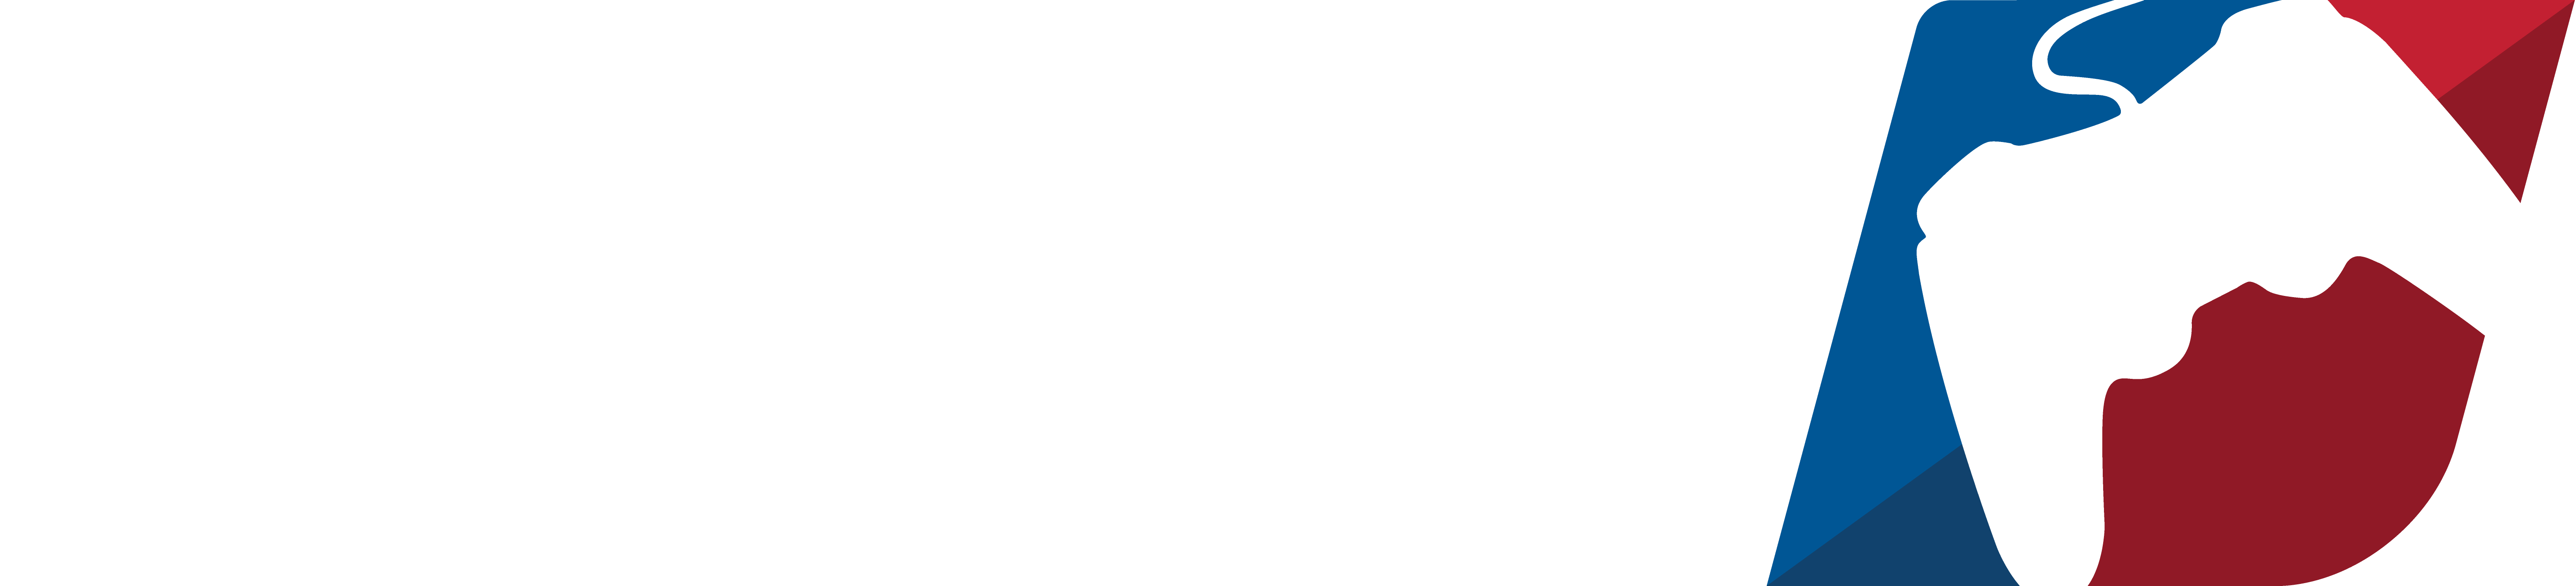 Mlg logo png. Loses vod of anaheim